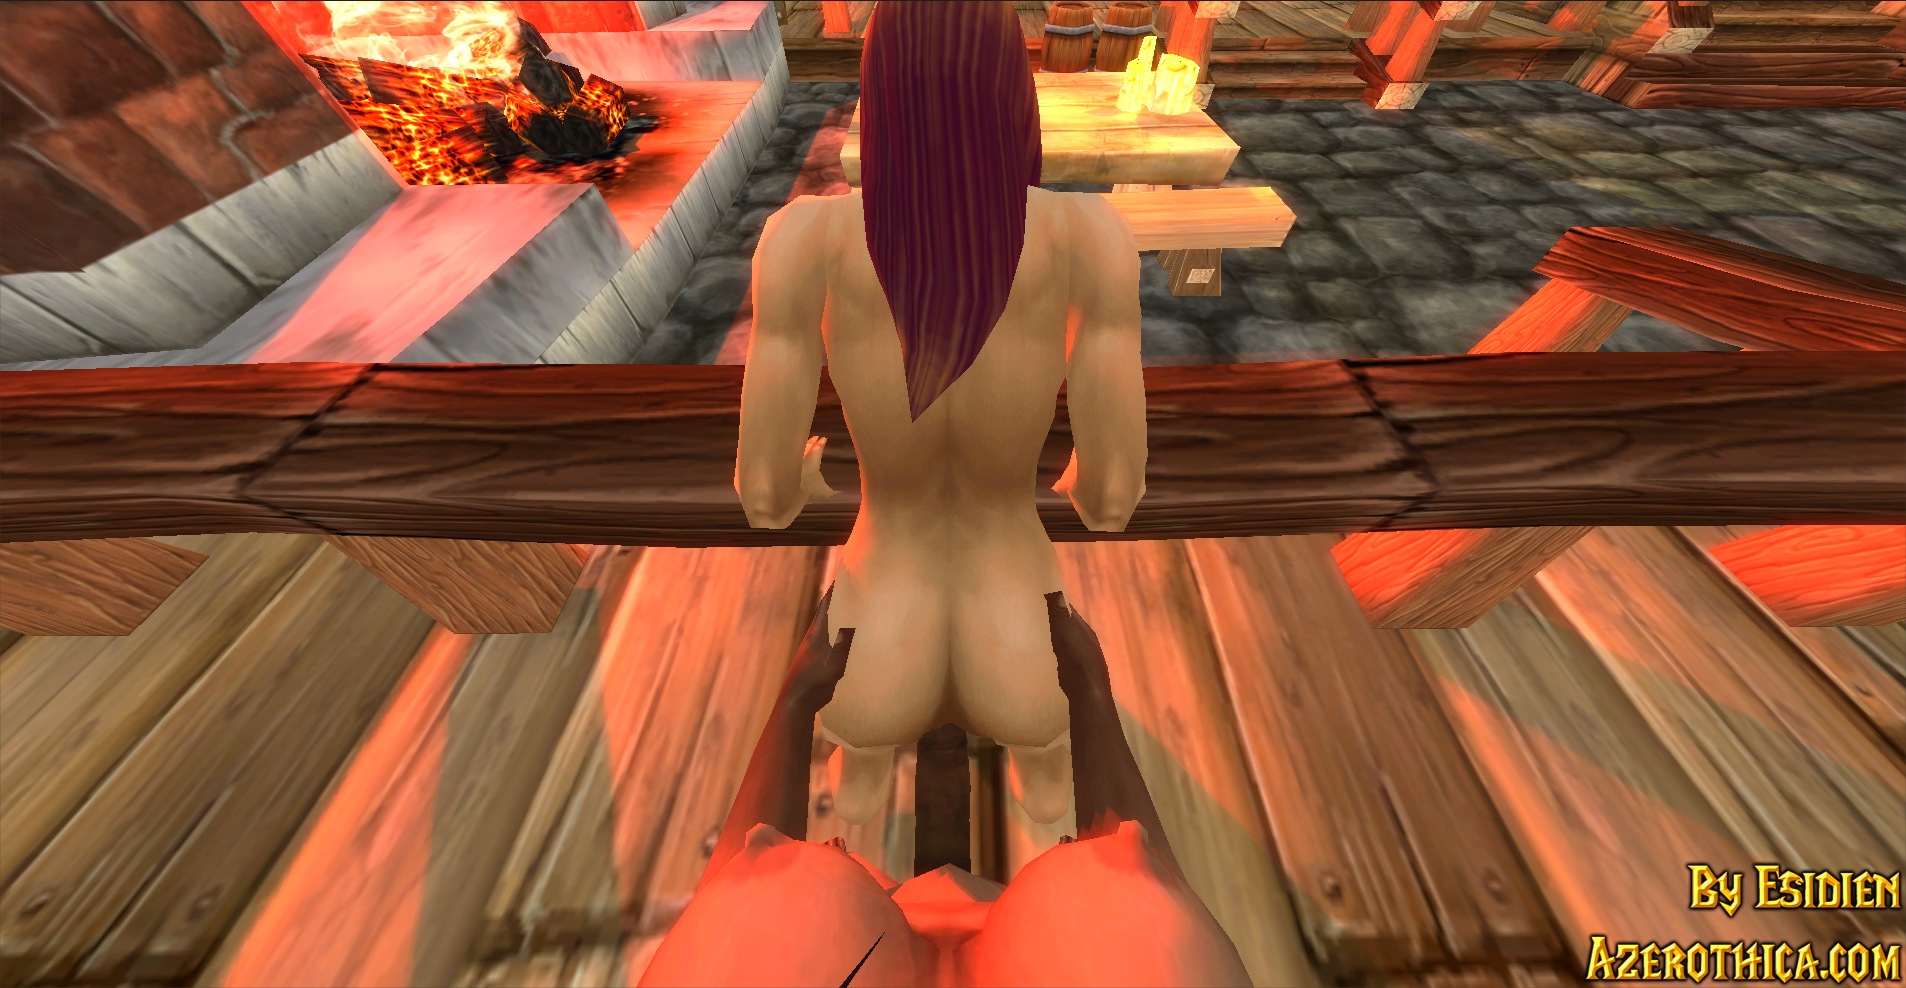 World of warcraft shemale naked videos